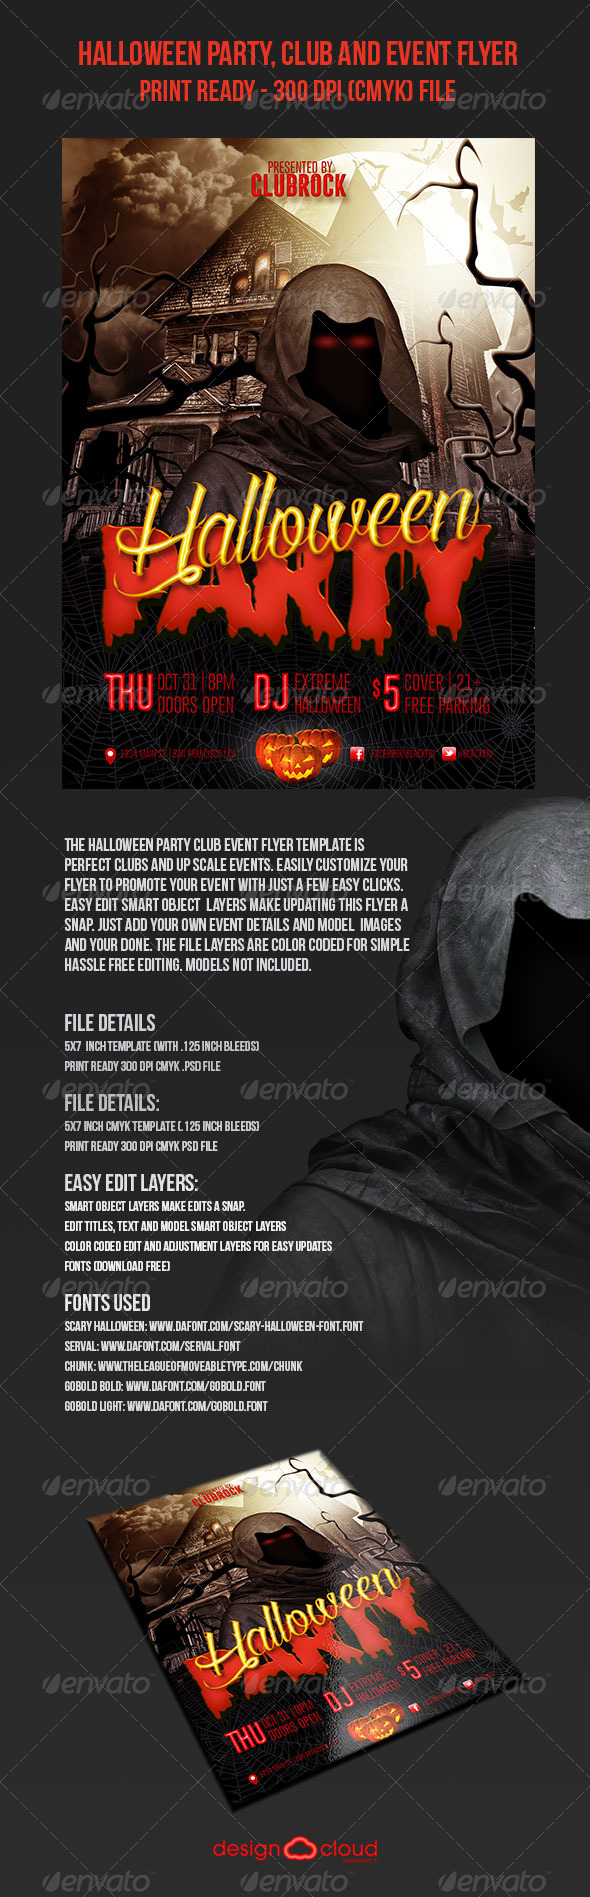 GraphicRiver Halloween Party Club and Event Flyer 5799101